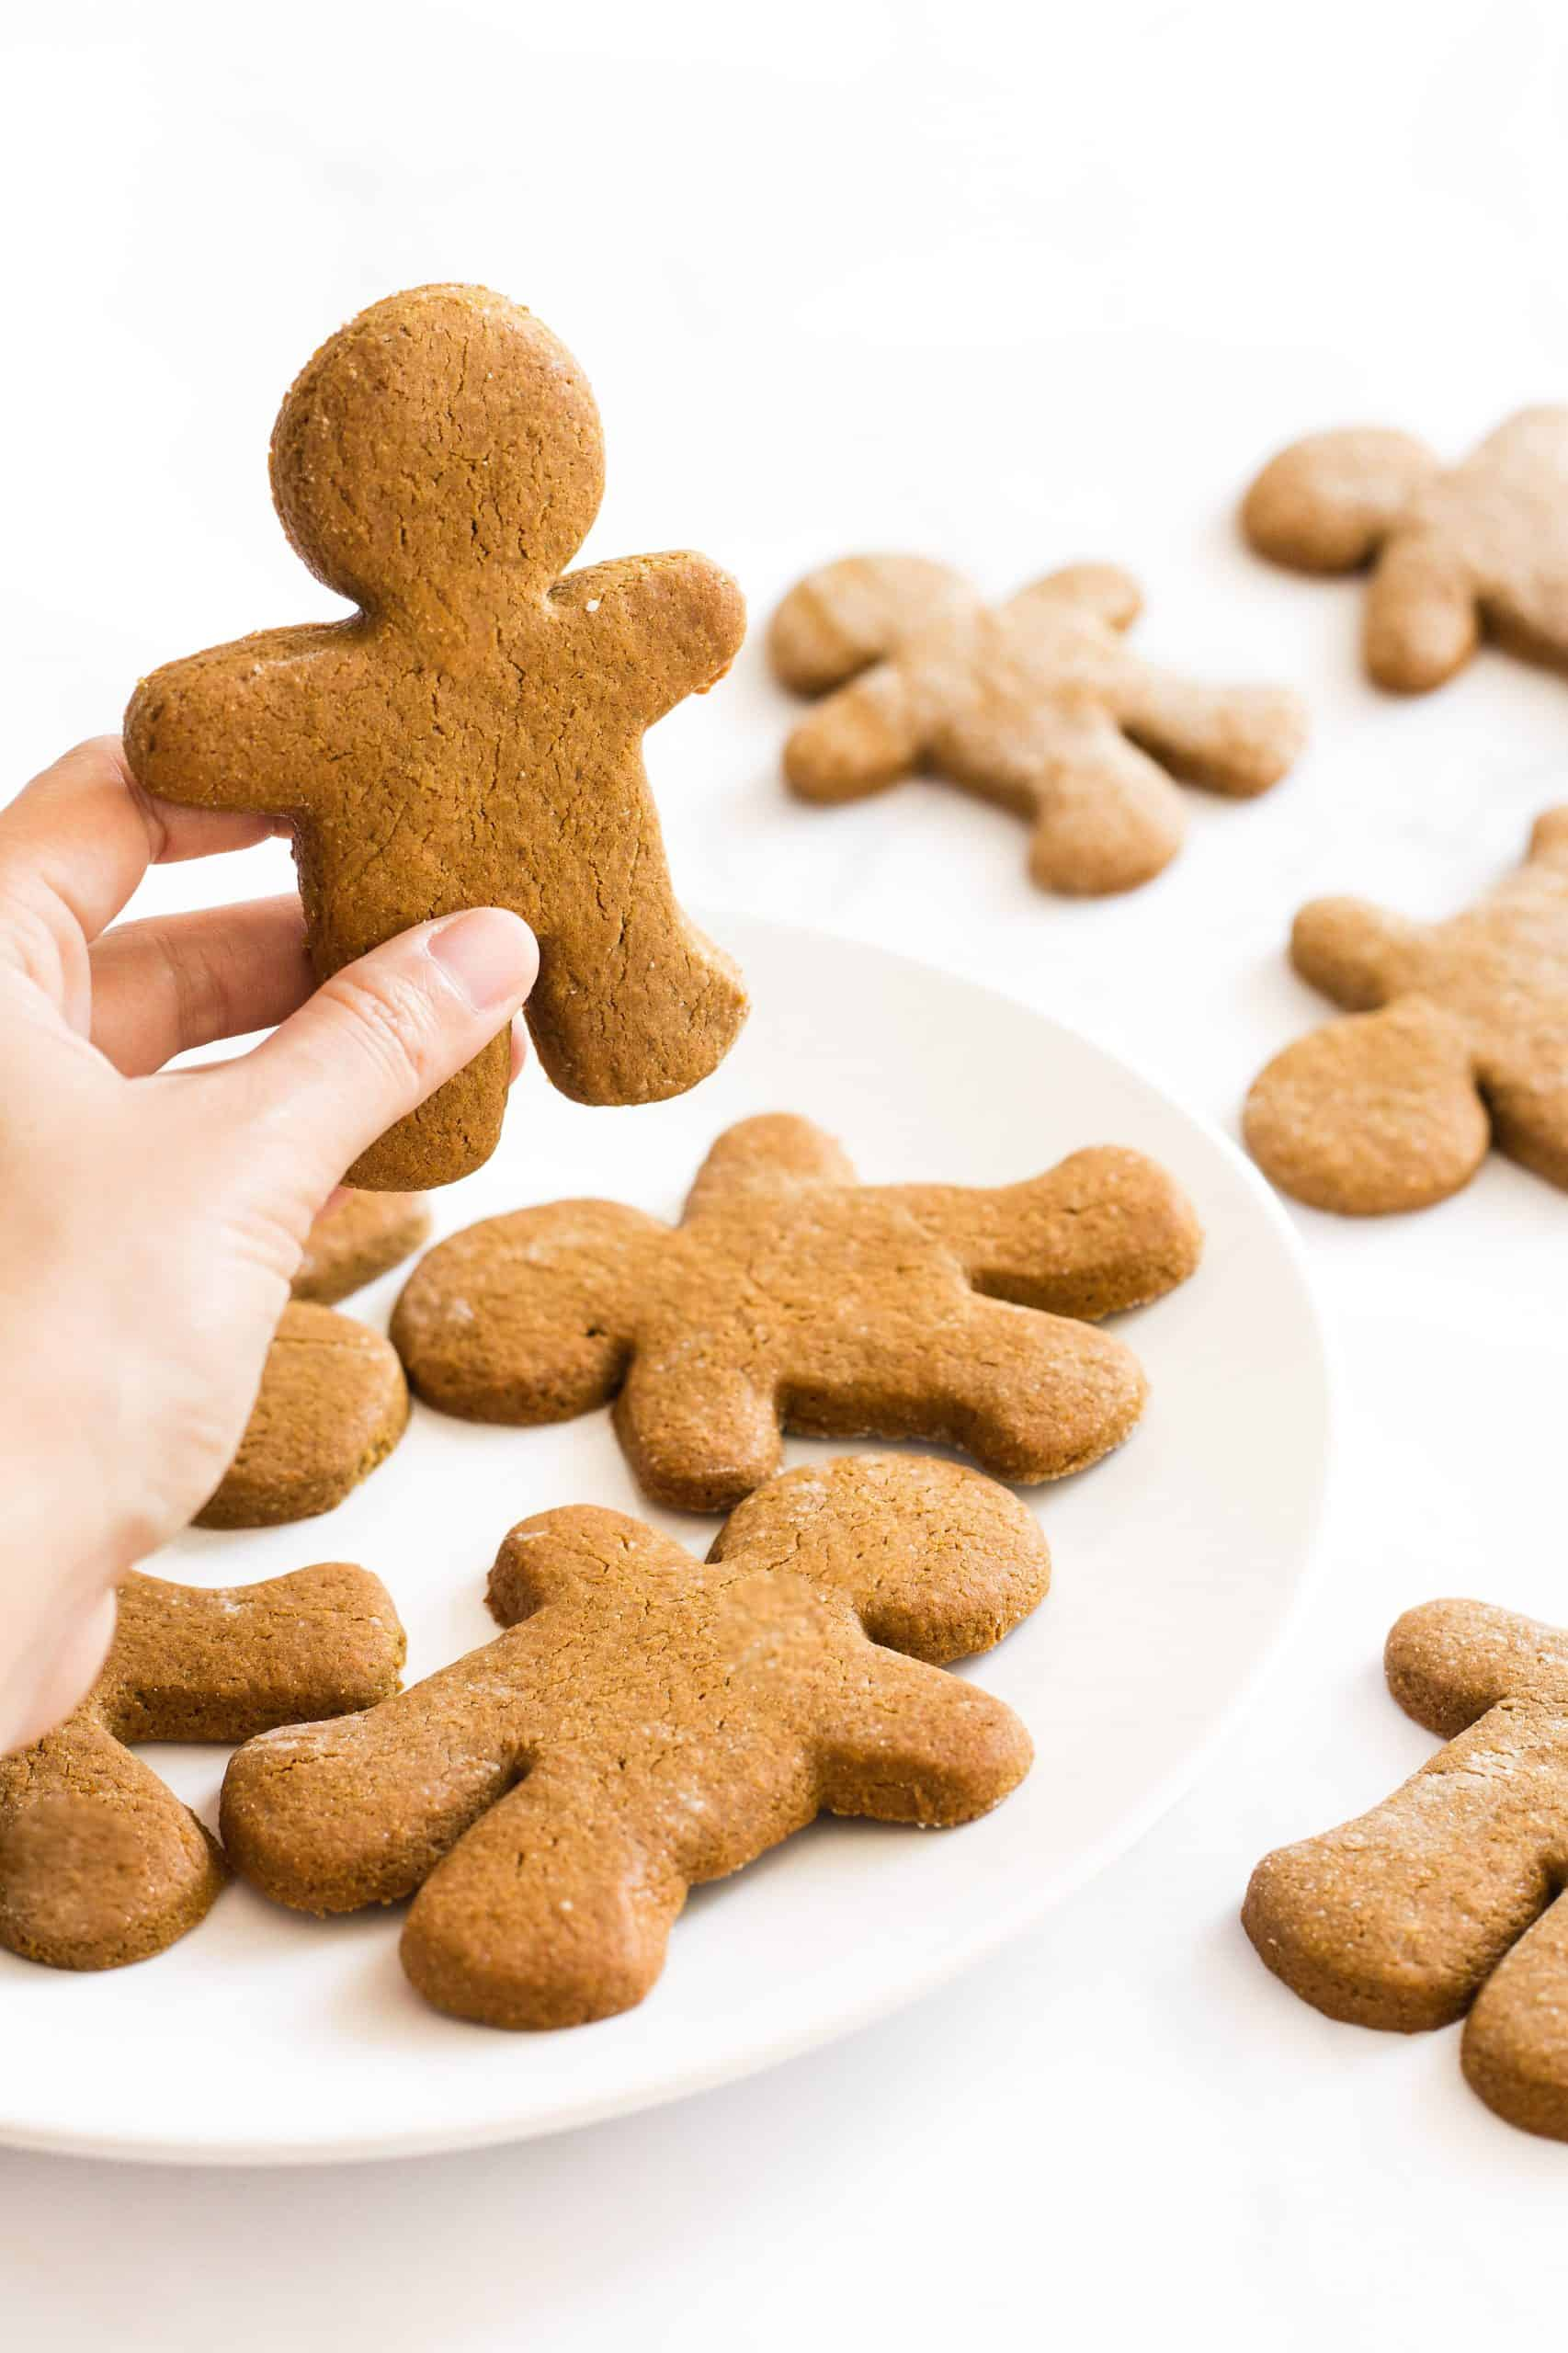 Hand holding up a gingerbread man from a plate of cookies.